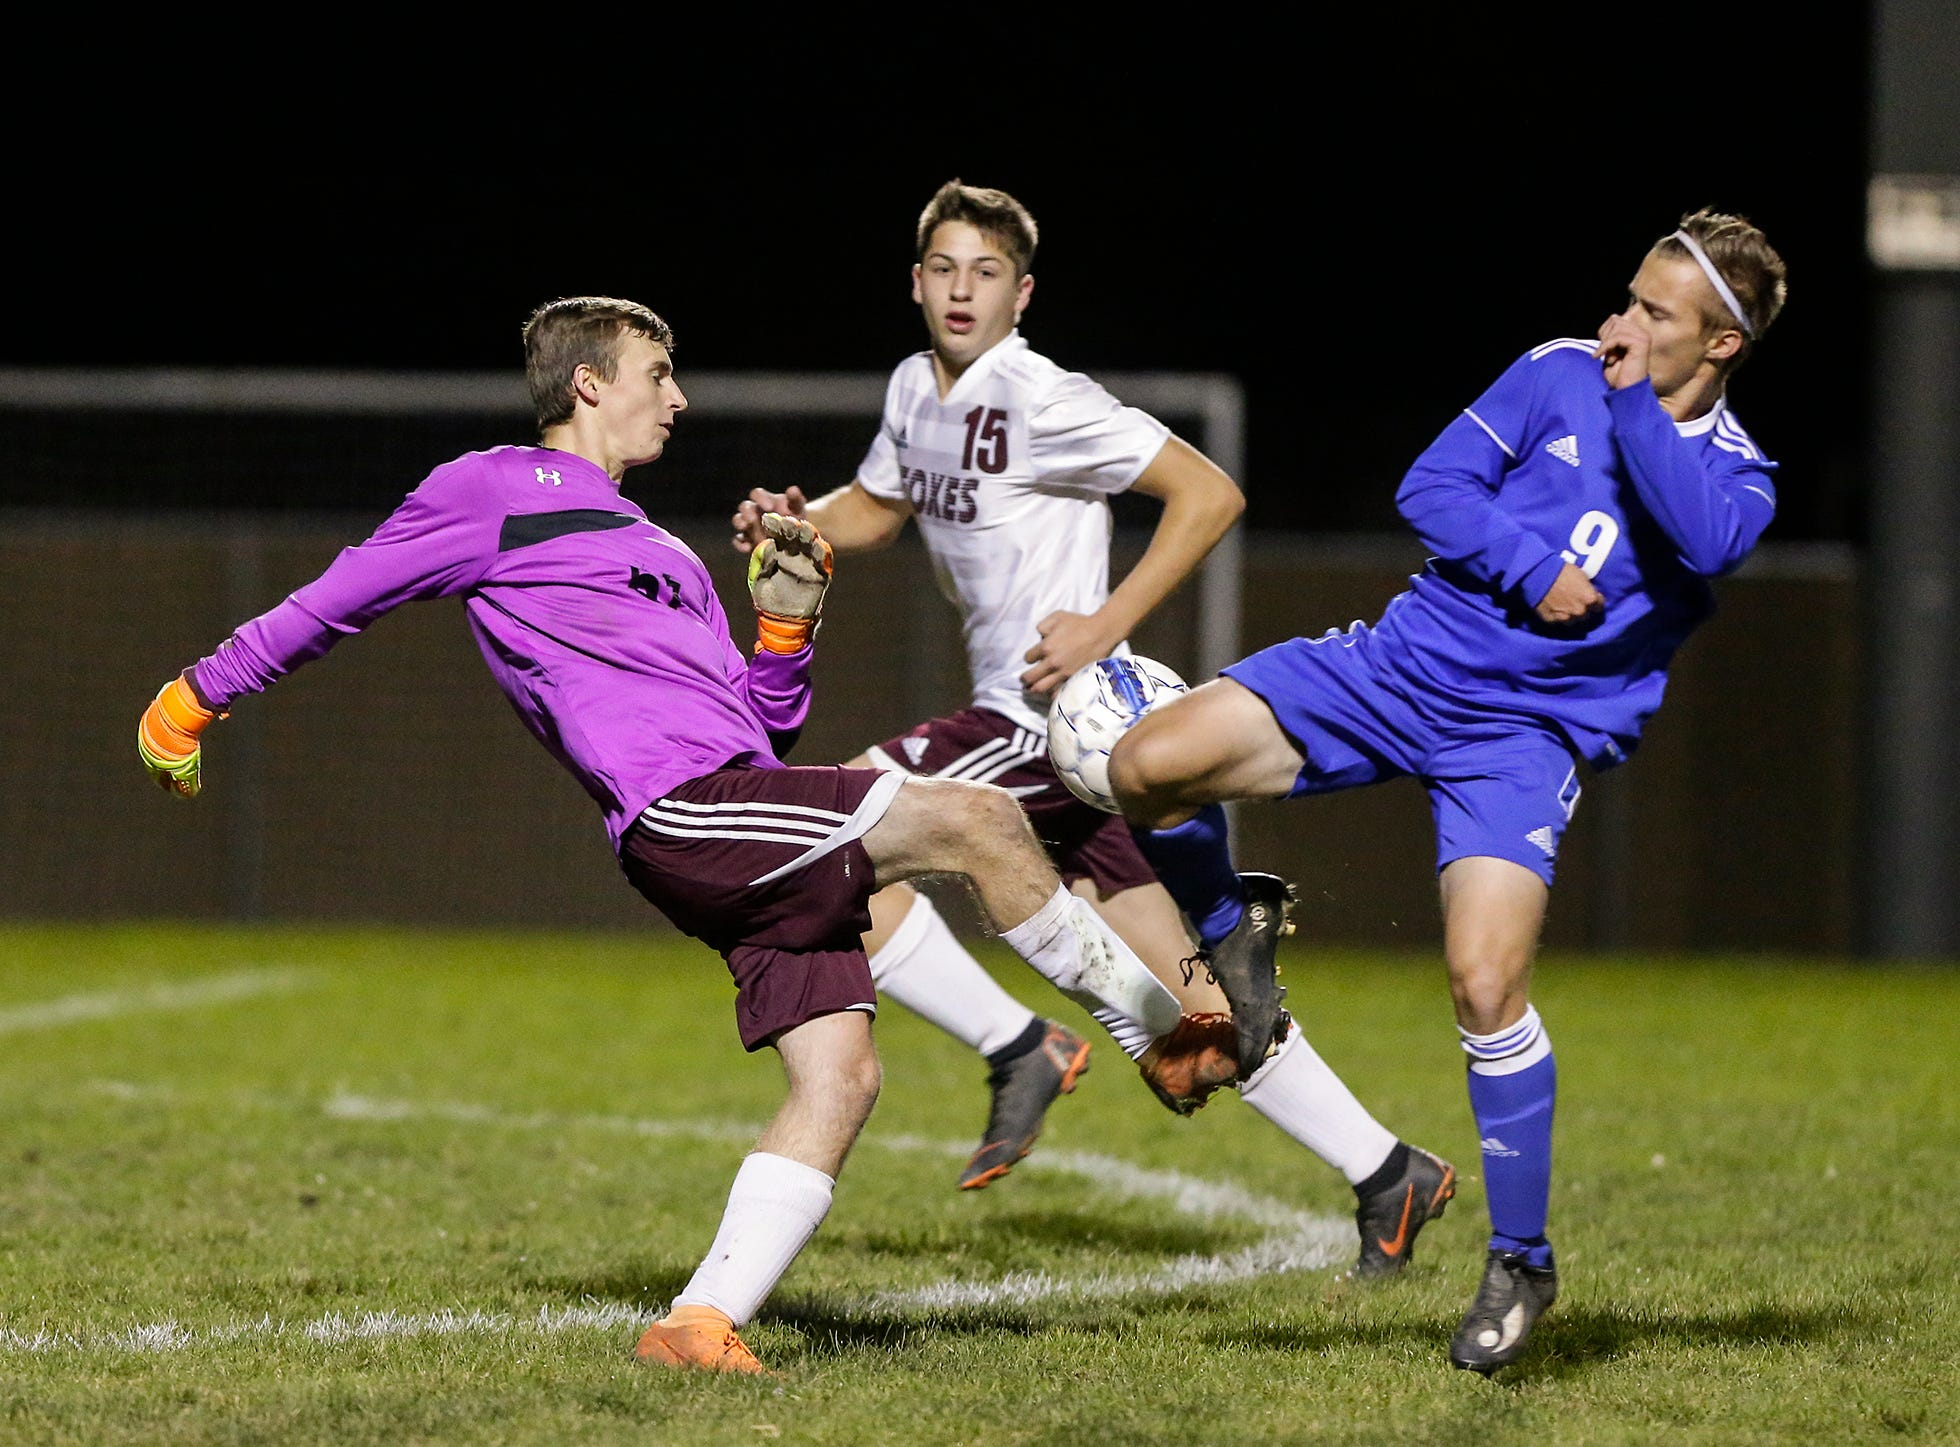 Omro High School soccer's Zachery Milner and Winnebago Lutheran Academy's Kaleb Schroeder battle for the ball during their WIAA regional playoff game Thursday, October 18, 2018 in Fond du Lac, Wisconsin. Doug Raflik/USA TODAY NETWORK-Wisconsin